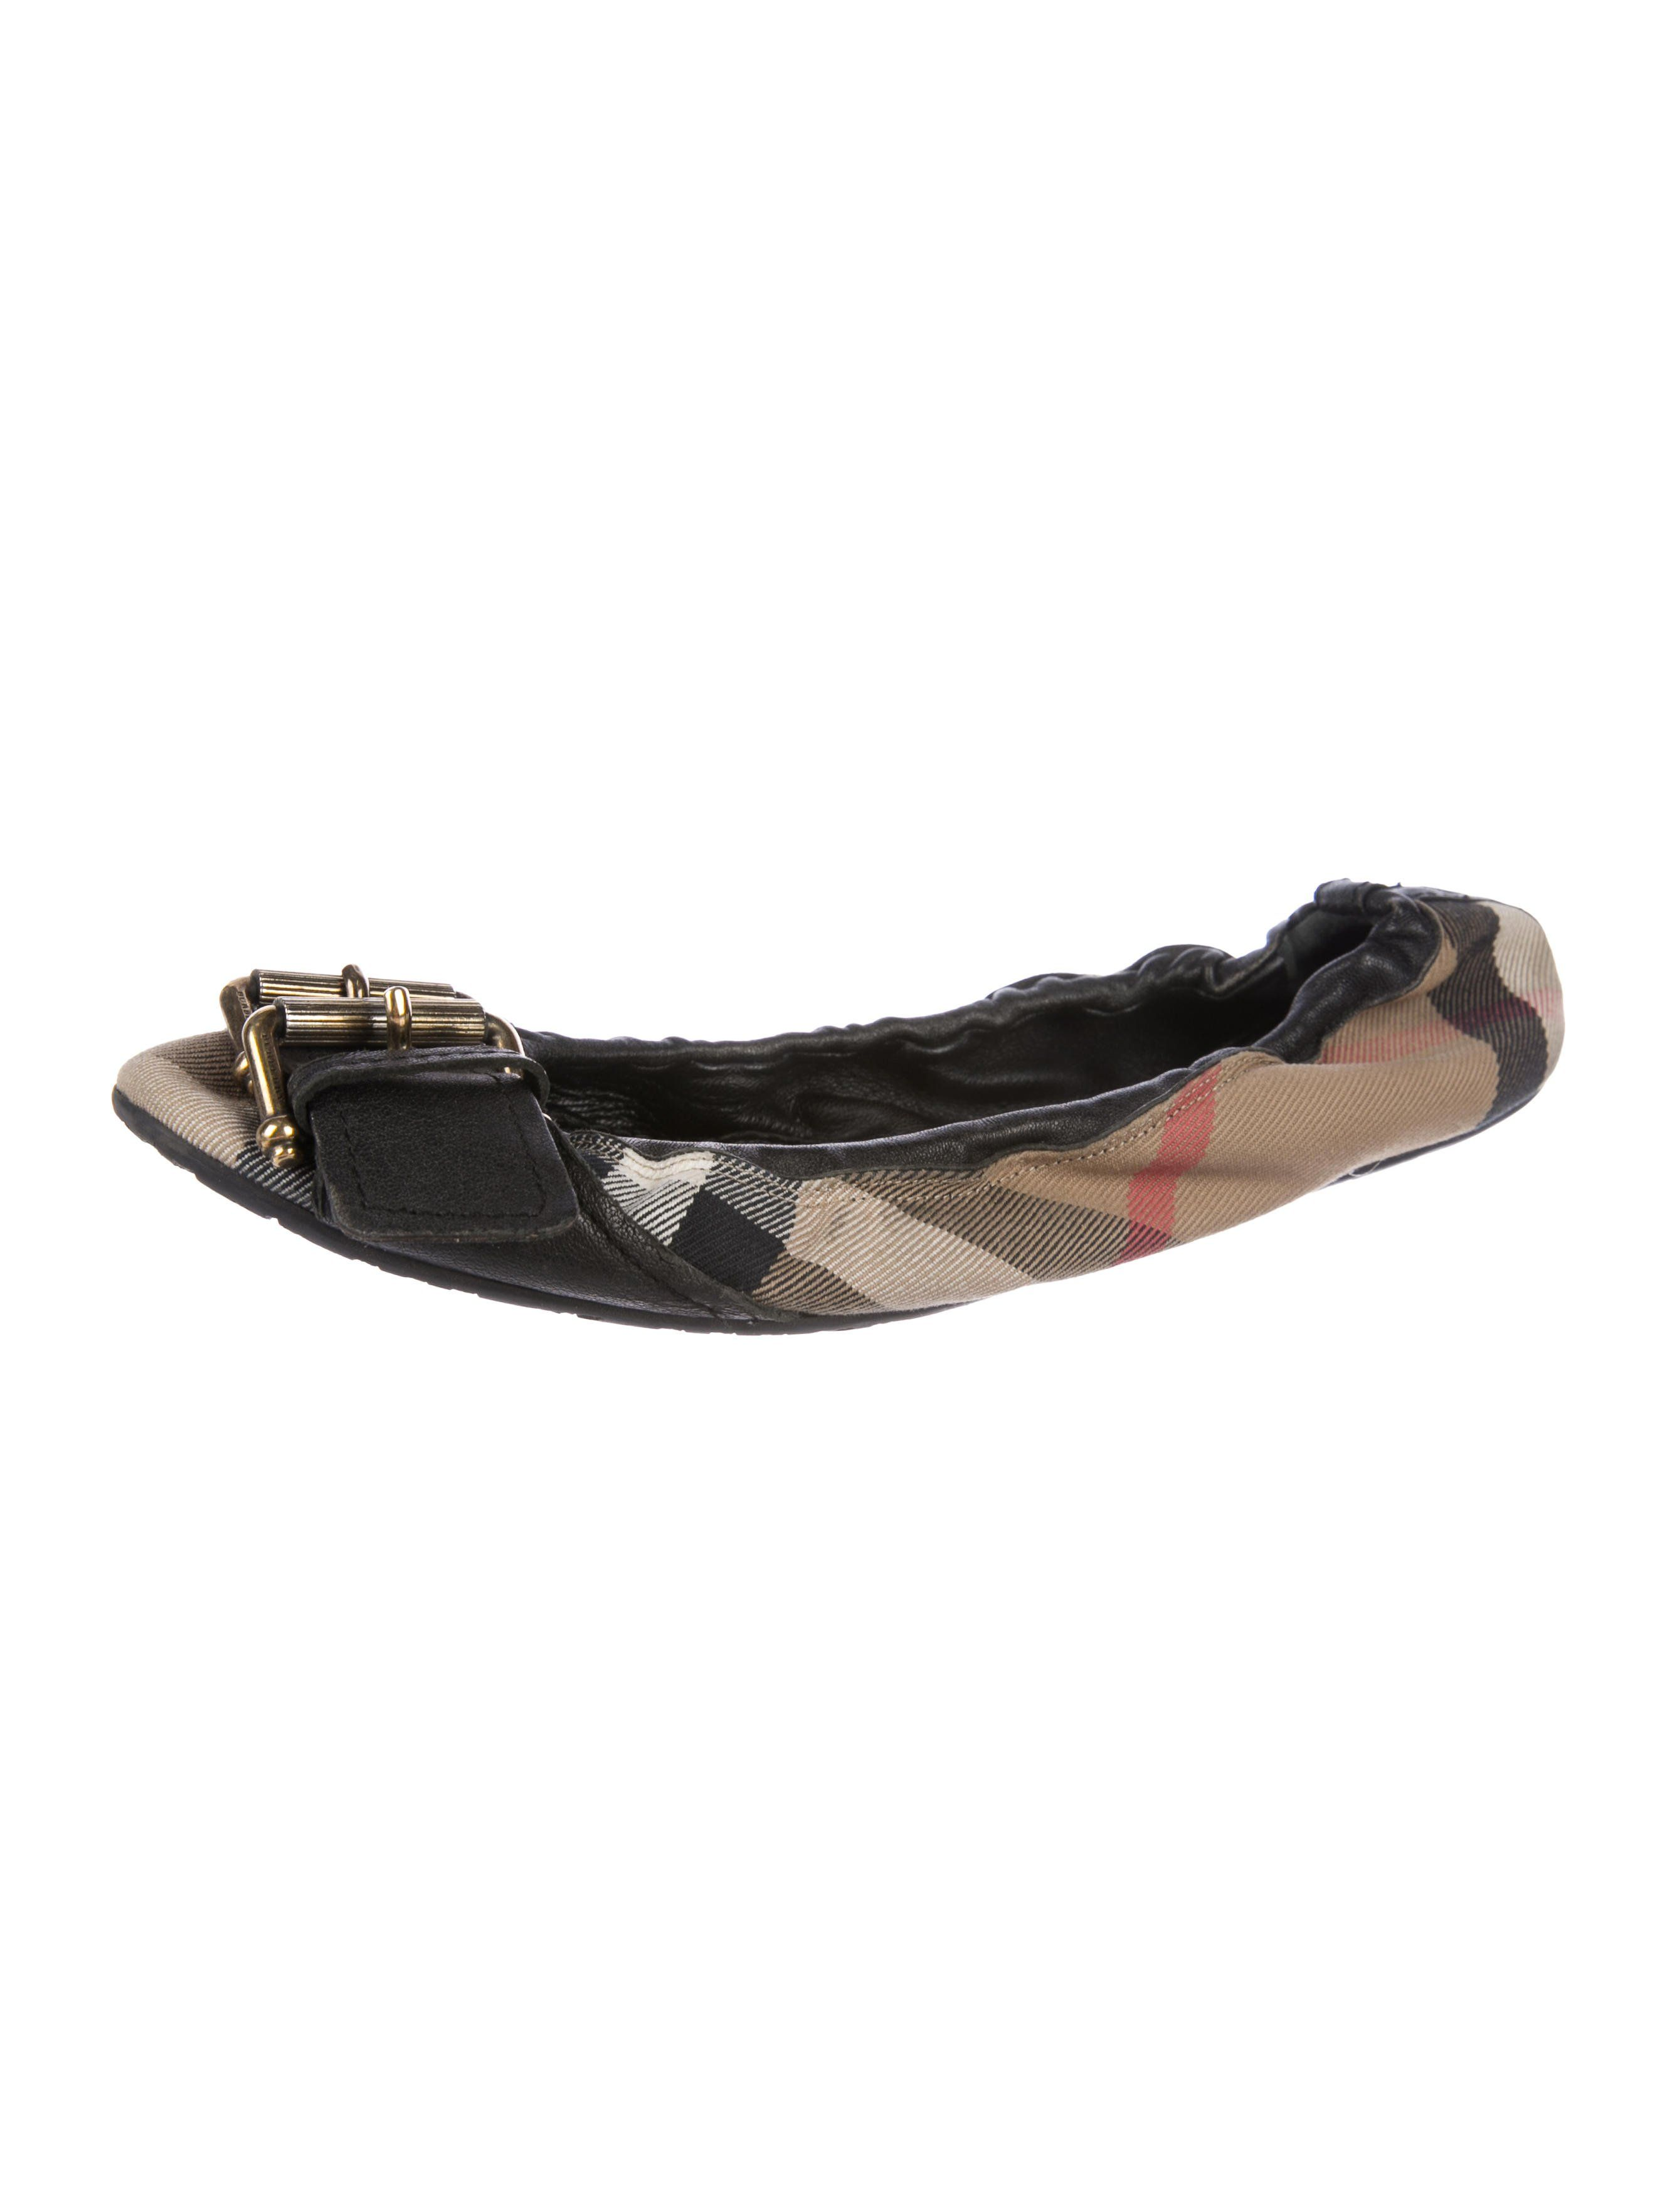 b7ed8e96243d83 Brown and multicolor canvas Burberry round-toe flats with Nova Check print  throughout